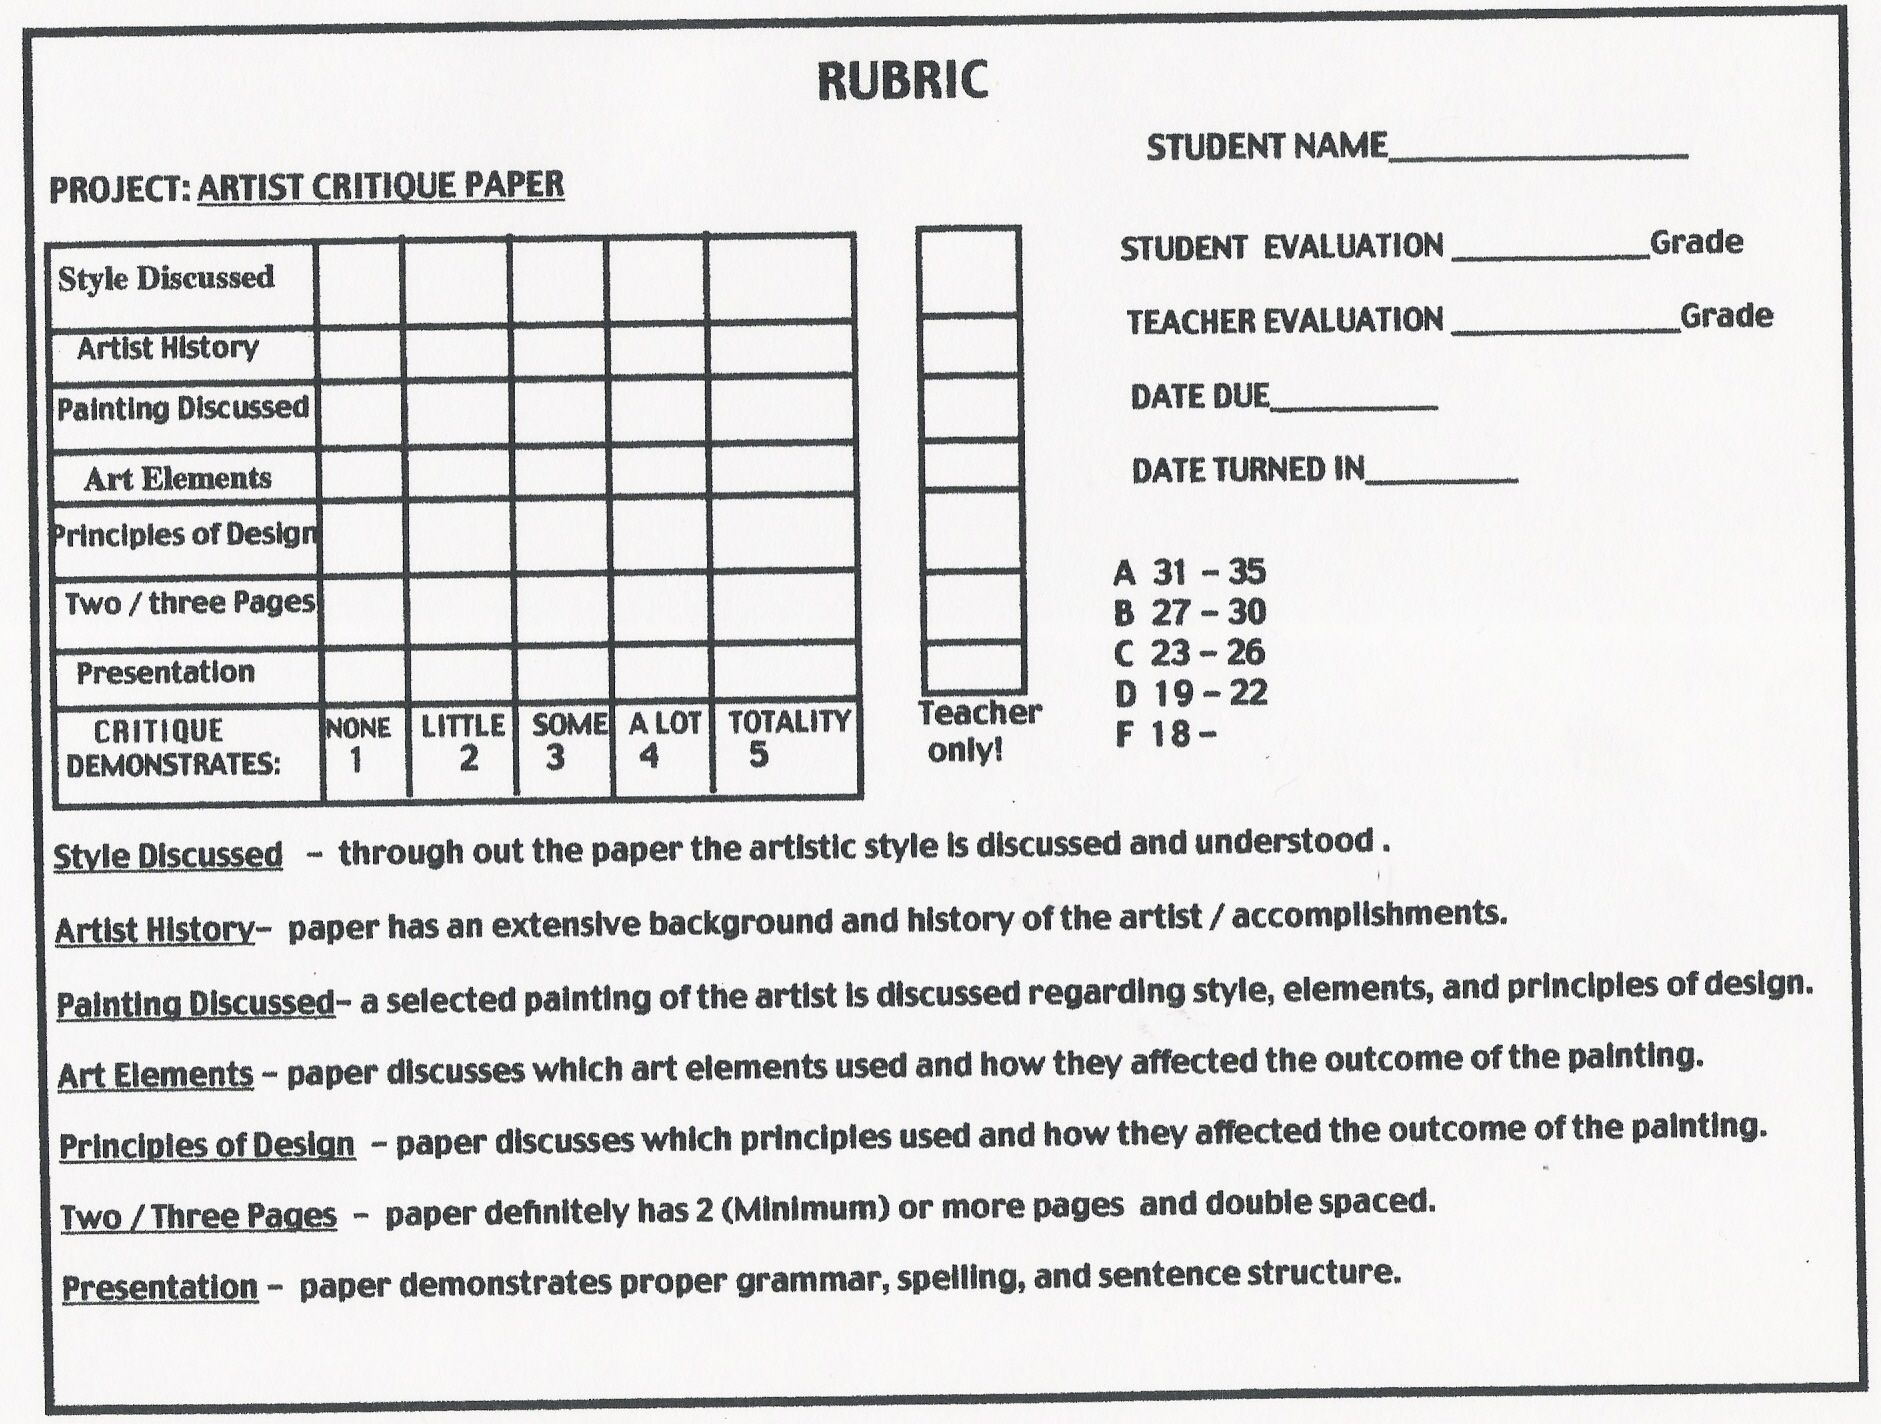 006 Research Paper College History Stirring Rubric Full